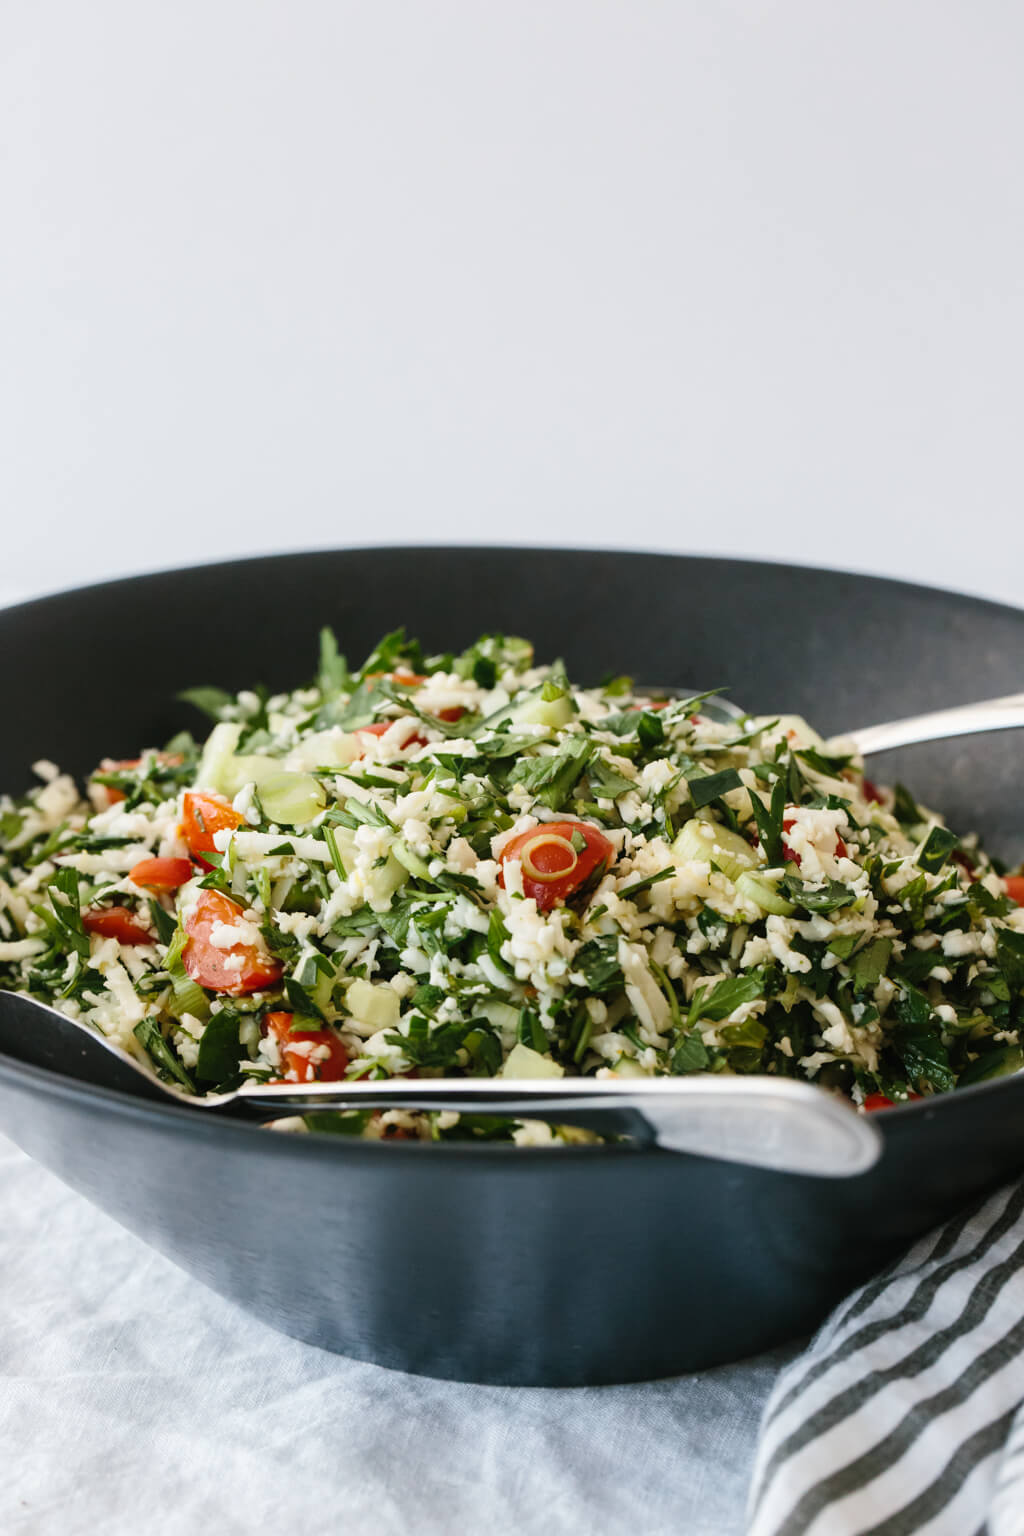 (gluten-free, paleo, whole30) Cauliflower rice tabbouleh is a tasty spin on tabbouleh and swaps bulgur with cauliflower rice, making this lemon herb salad gluten-free and paleo-friendly.